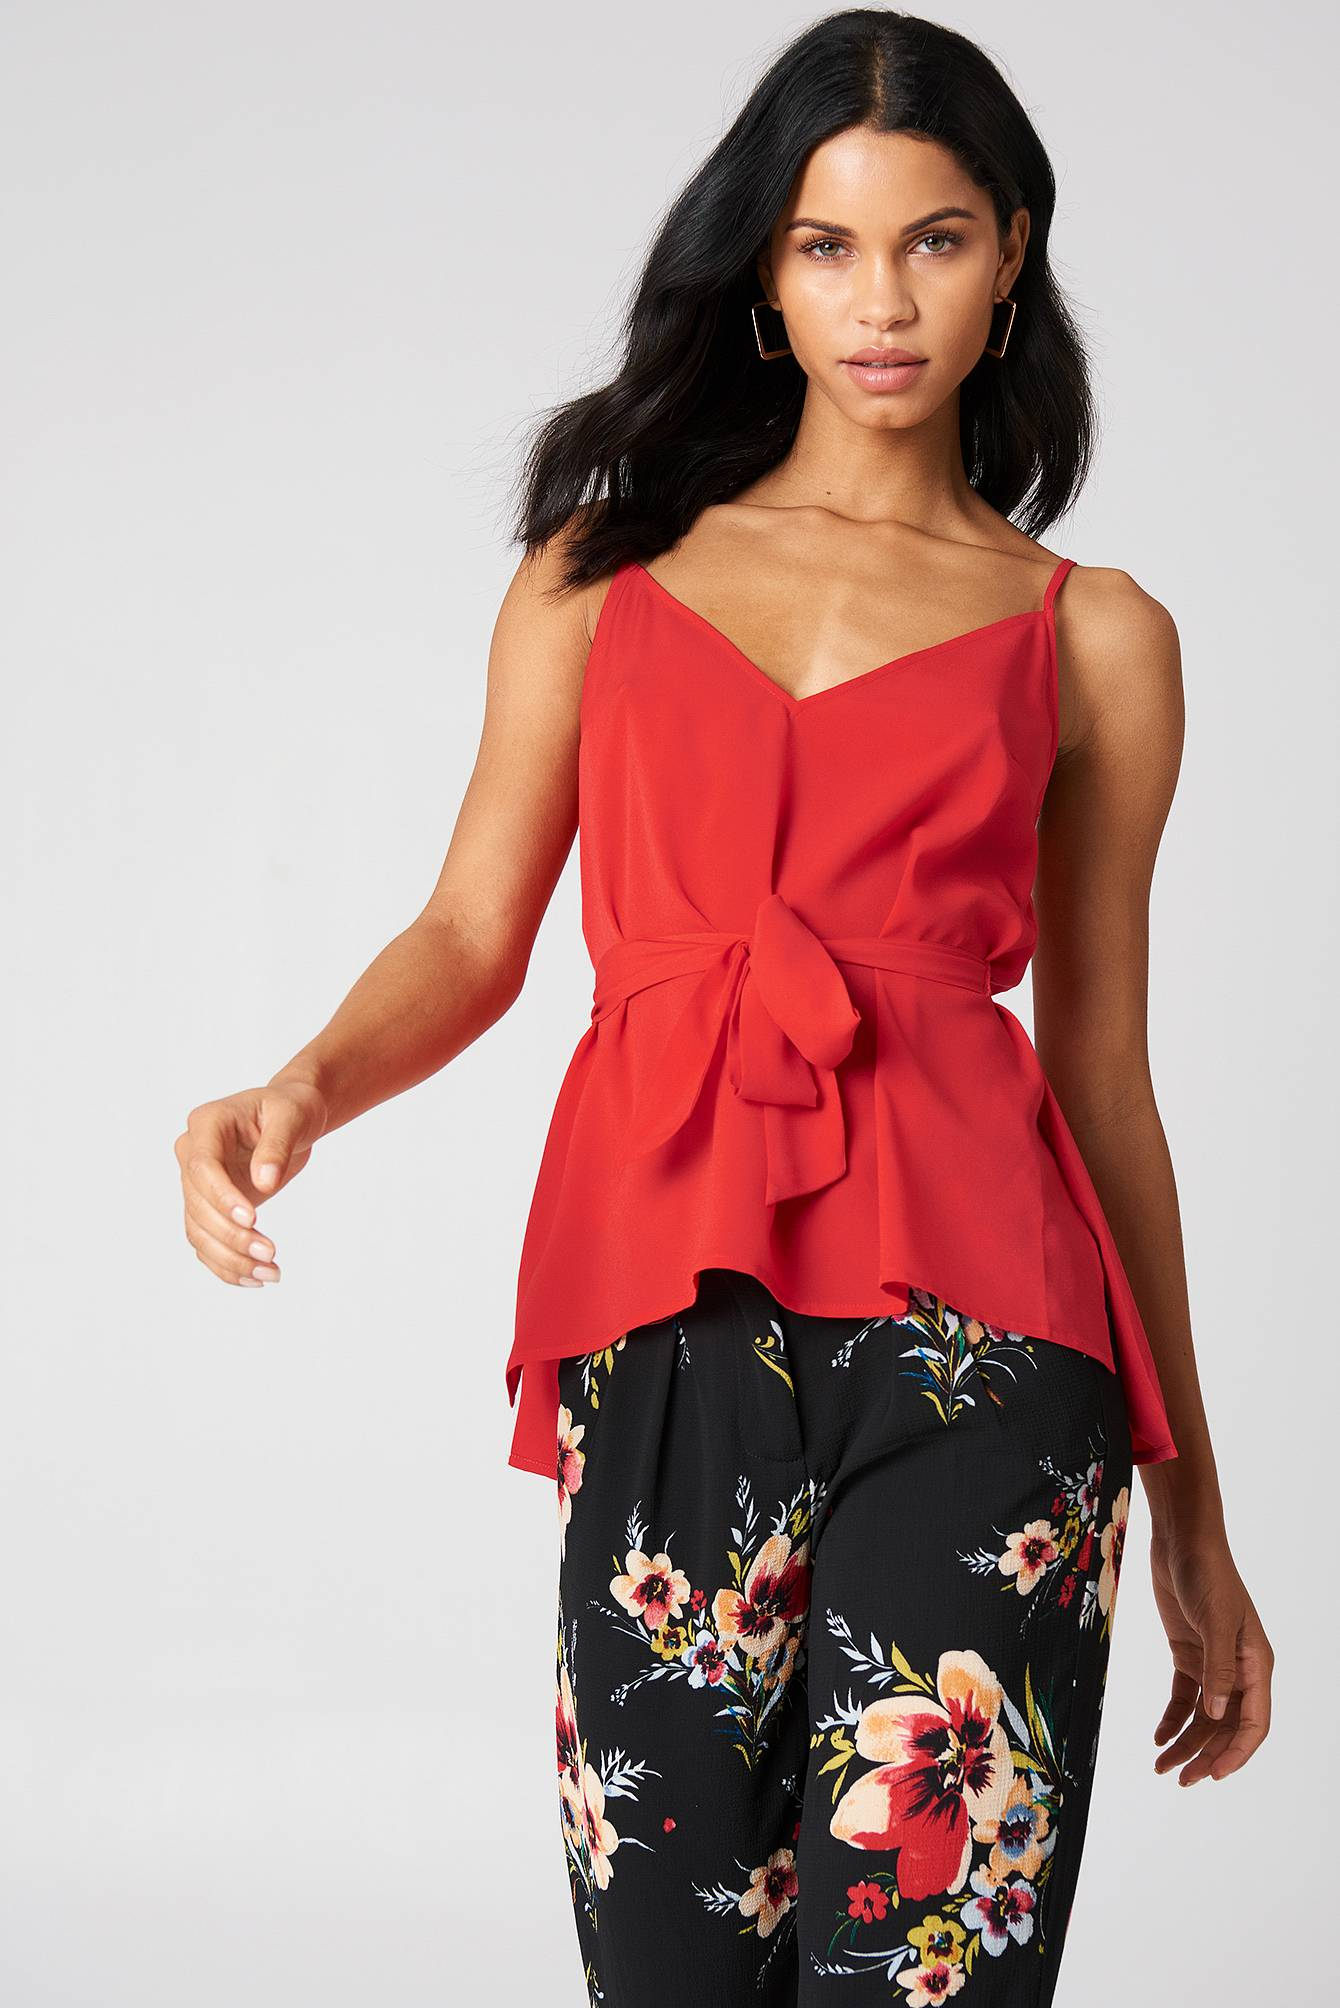 French Connection Dalma Strappy Top - Red